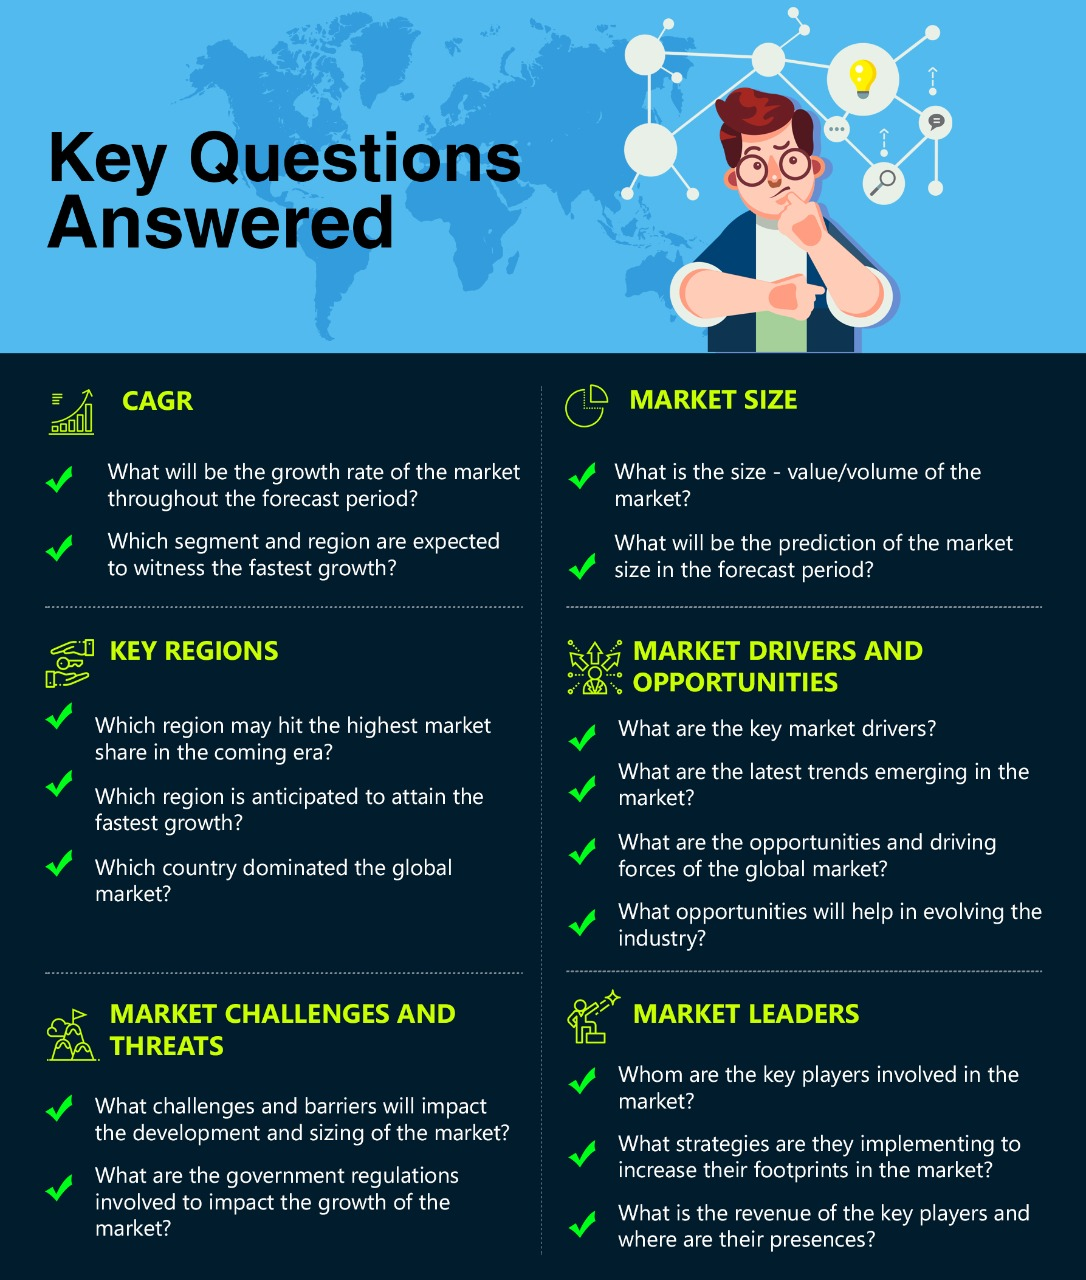 Key-Question-and-answered-market-research-report